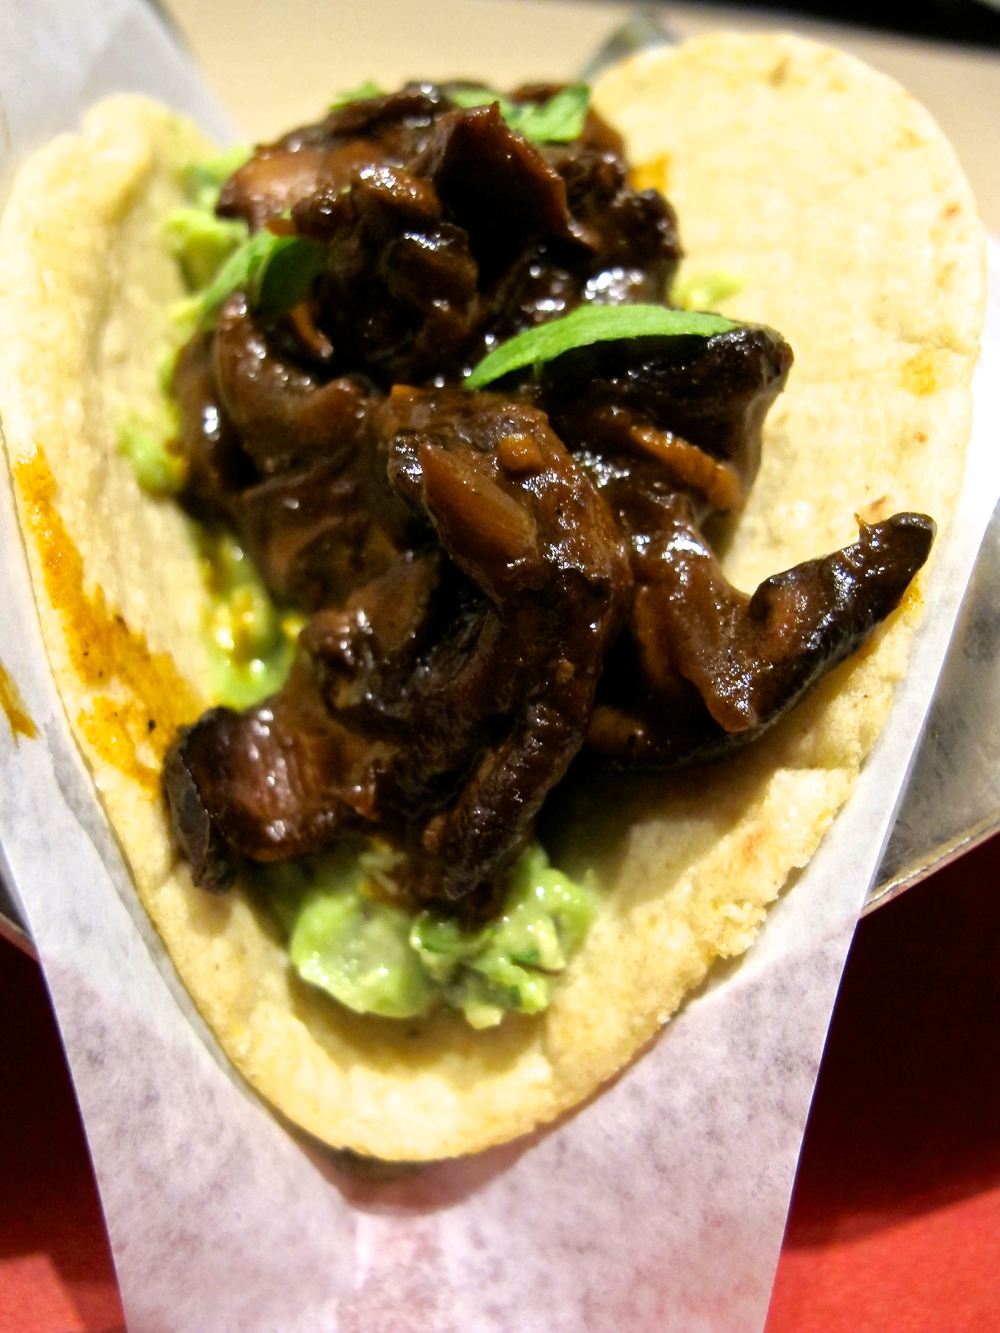 Wild mushroom and avocado taco